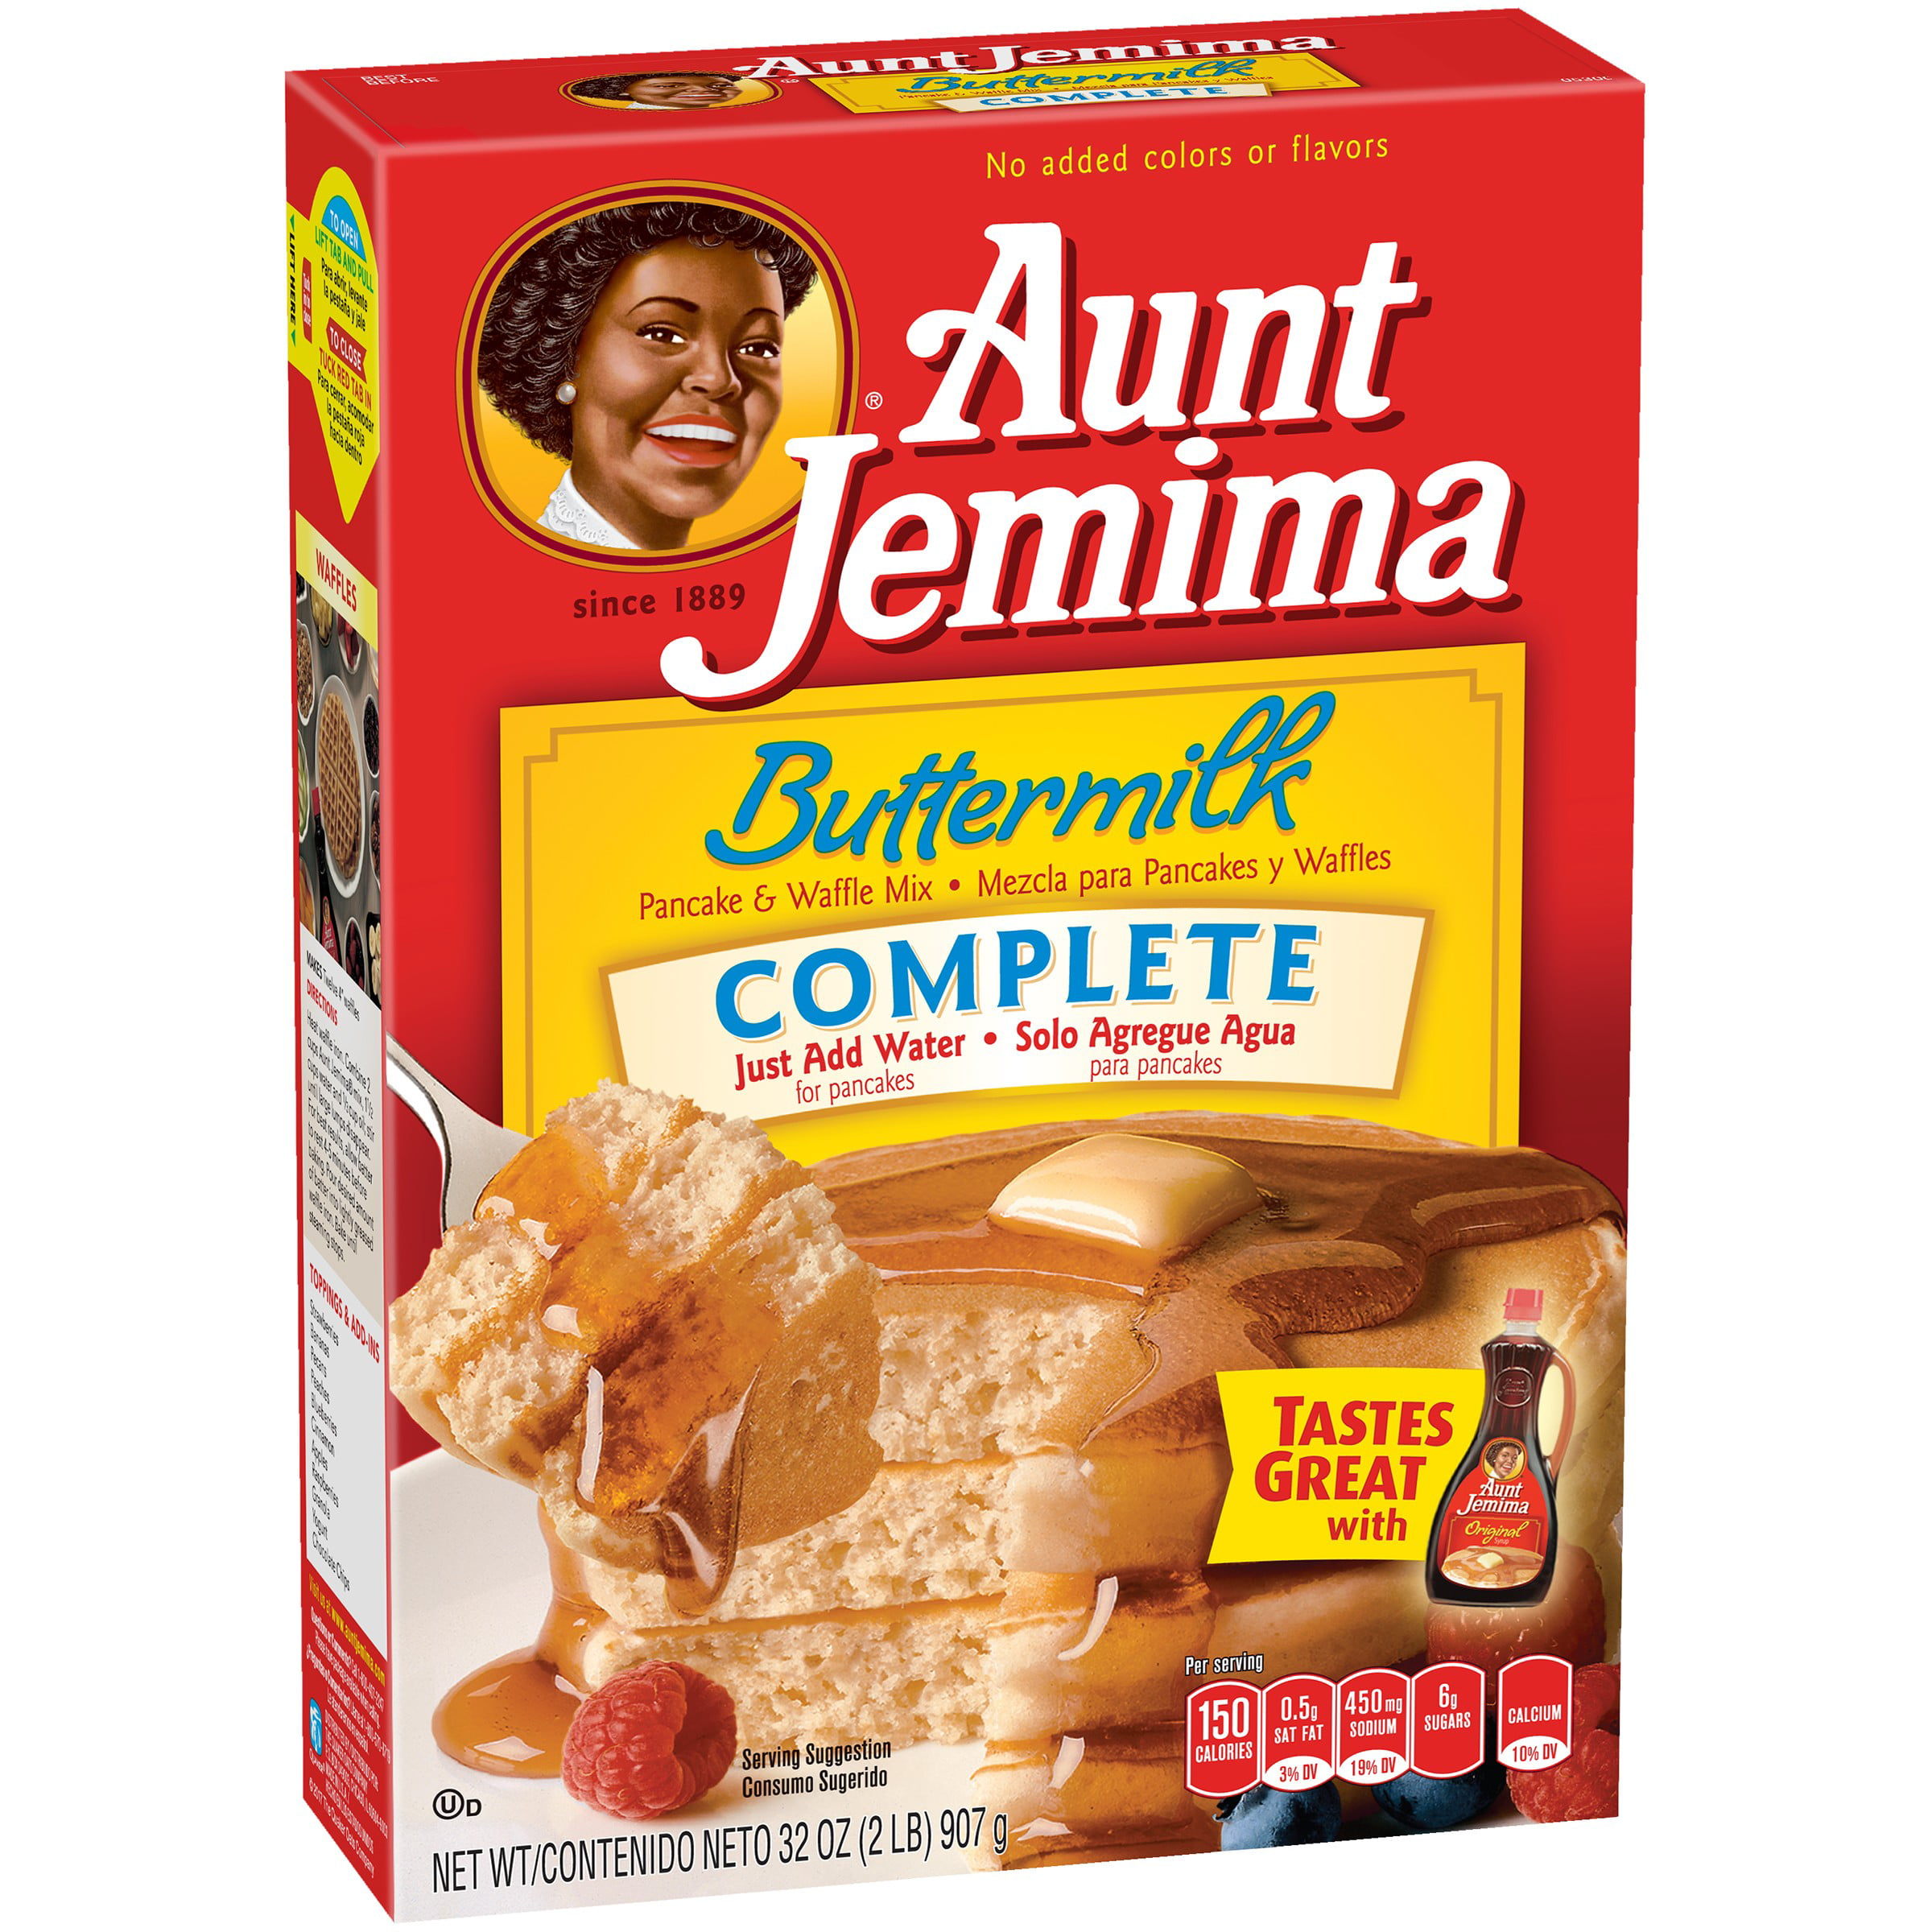 Aunt Jemima Buttermilk Complete Pancake & Waffle Mix, 32 oz Box by The Quaker Oats Company